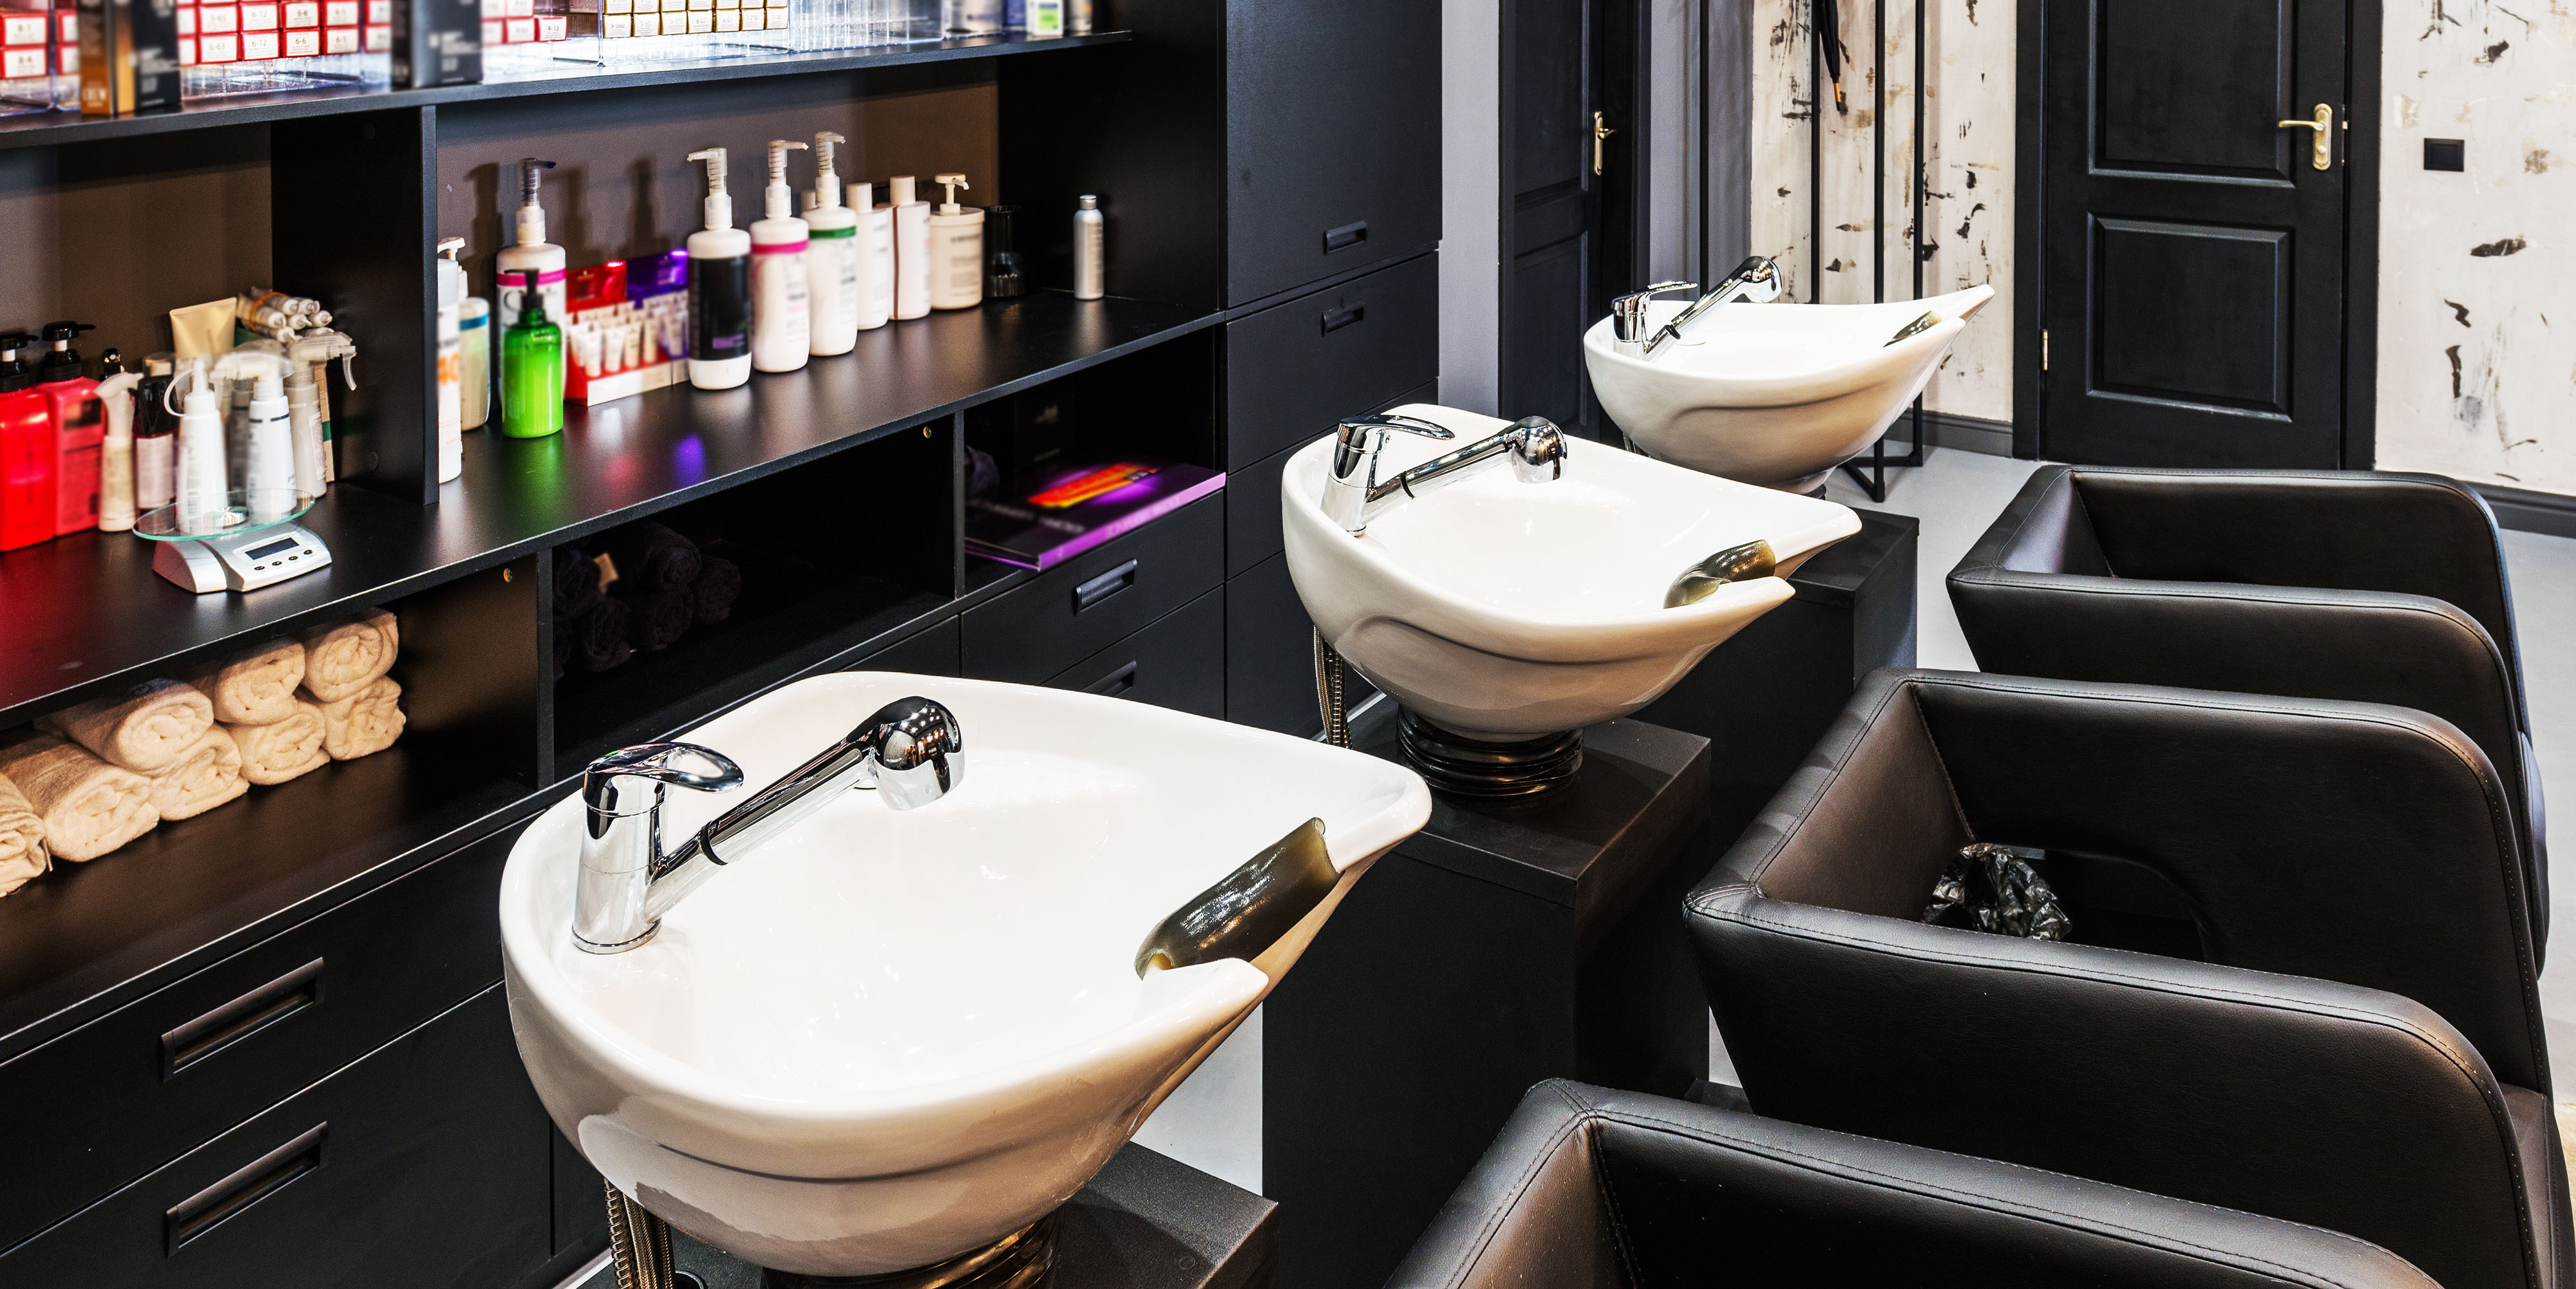 Hair wash bowls at a luxury salon